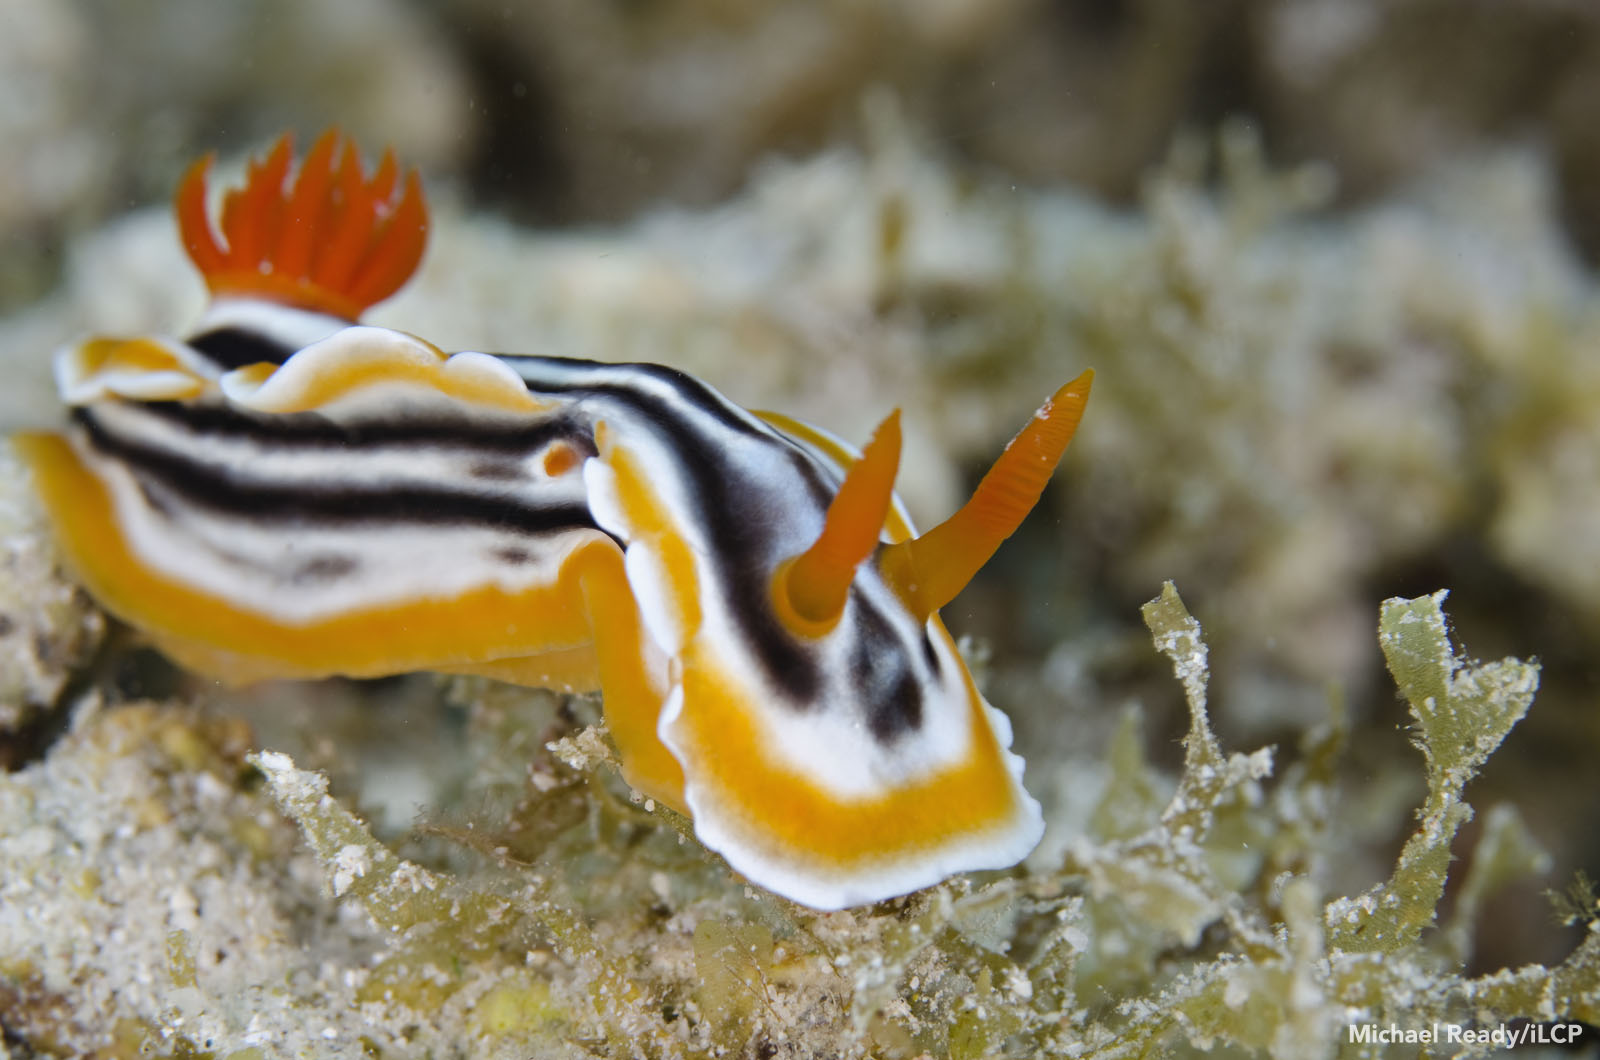 A magnificent chromodoris nudibranch, or sea slug, feeds on sponges growing on the reef. Michael Ready/iLCP